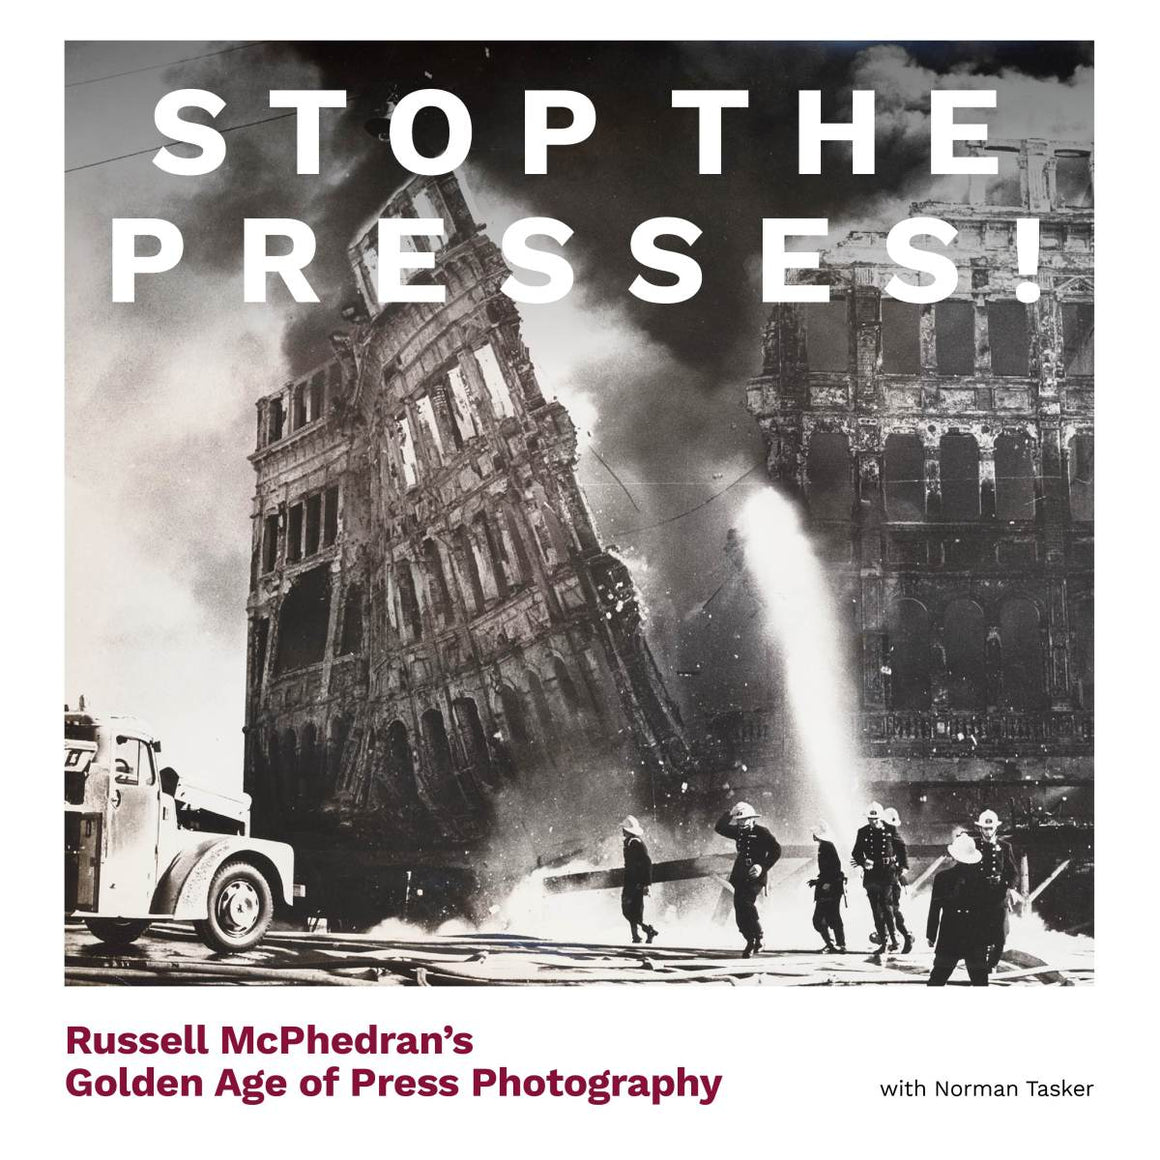 Book cover featuring an image a burning down building with firefighters in the front of the image. Including the words Stop The Presses!